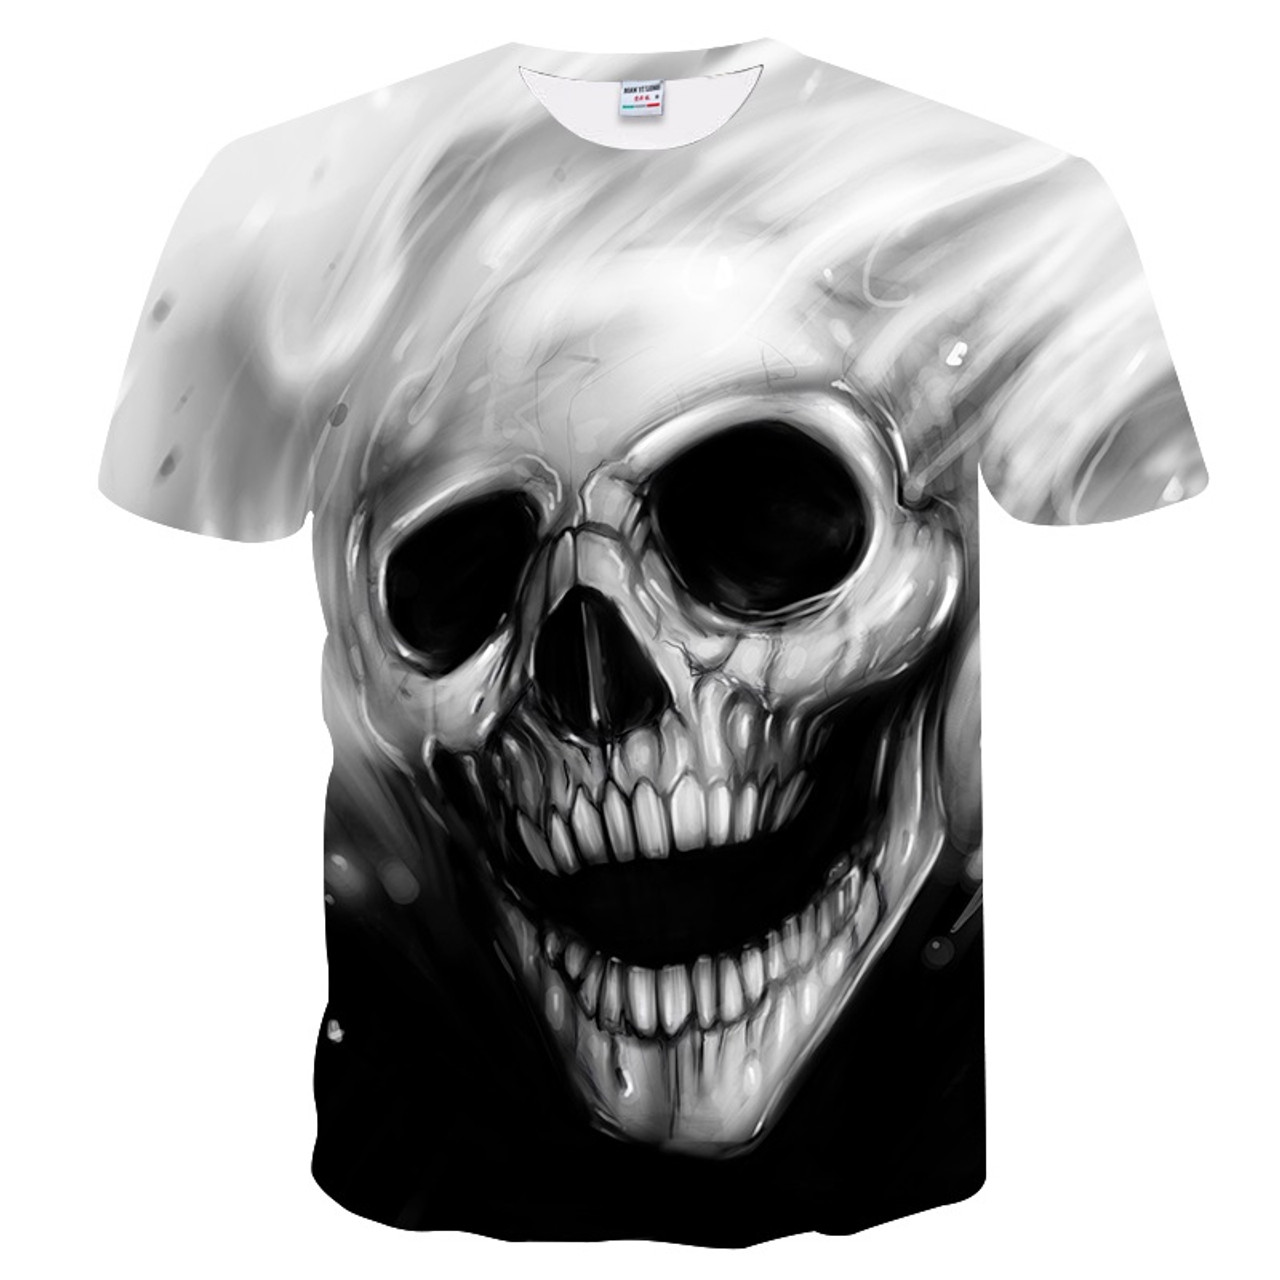 533798e3137 BIANYILONG New Big yards Arrivals Men Women 3d T-shirt Print Melted Skull  Quick Dry Summer Tops Tees Brand Tshirts - OnshopDeals.Com